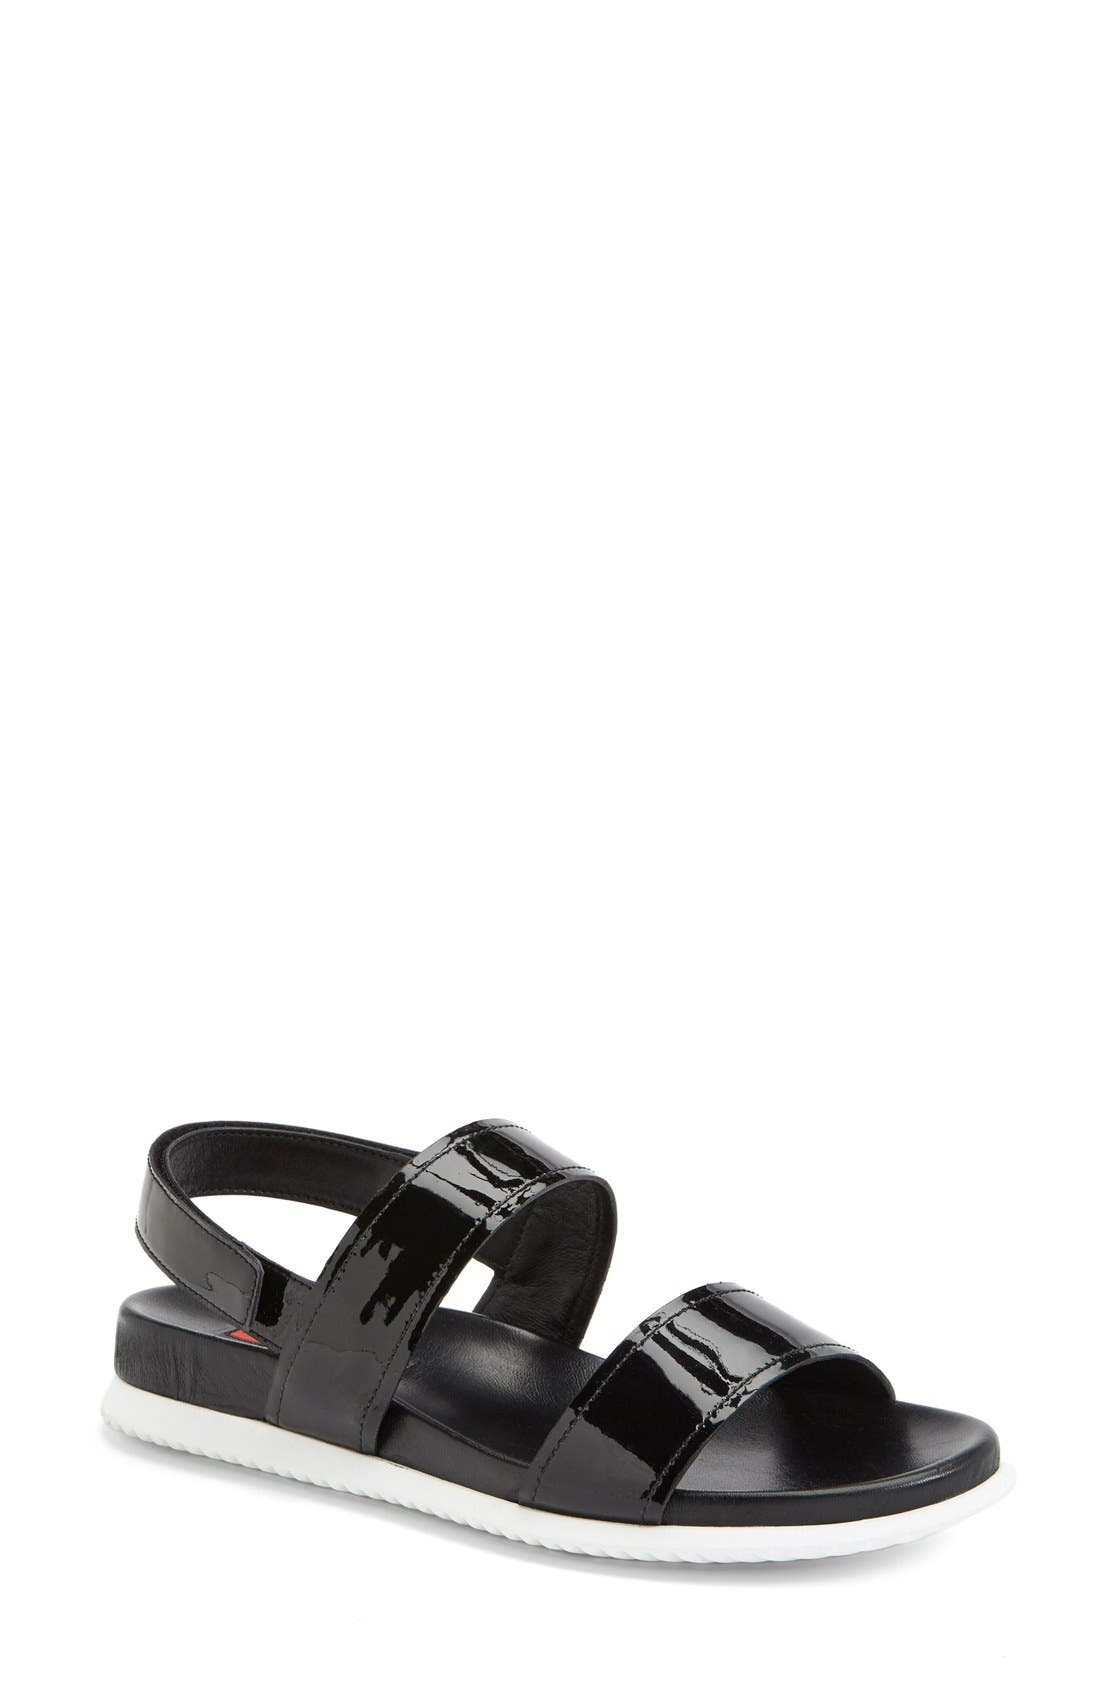 Alternate Image 1 Selected - Prada Sport Sandal (Women)